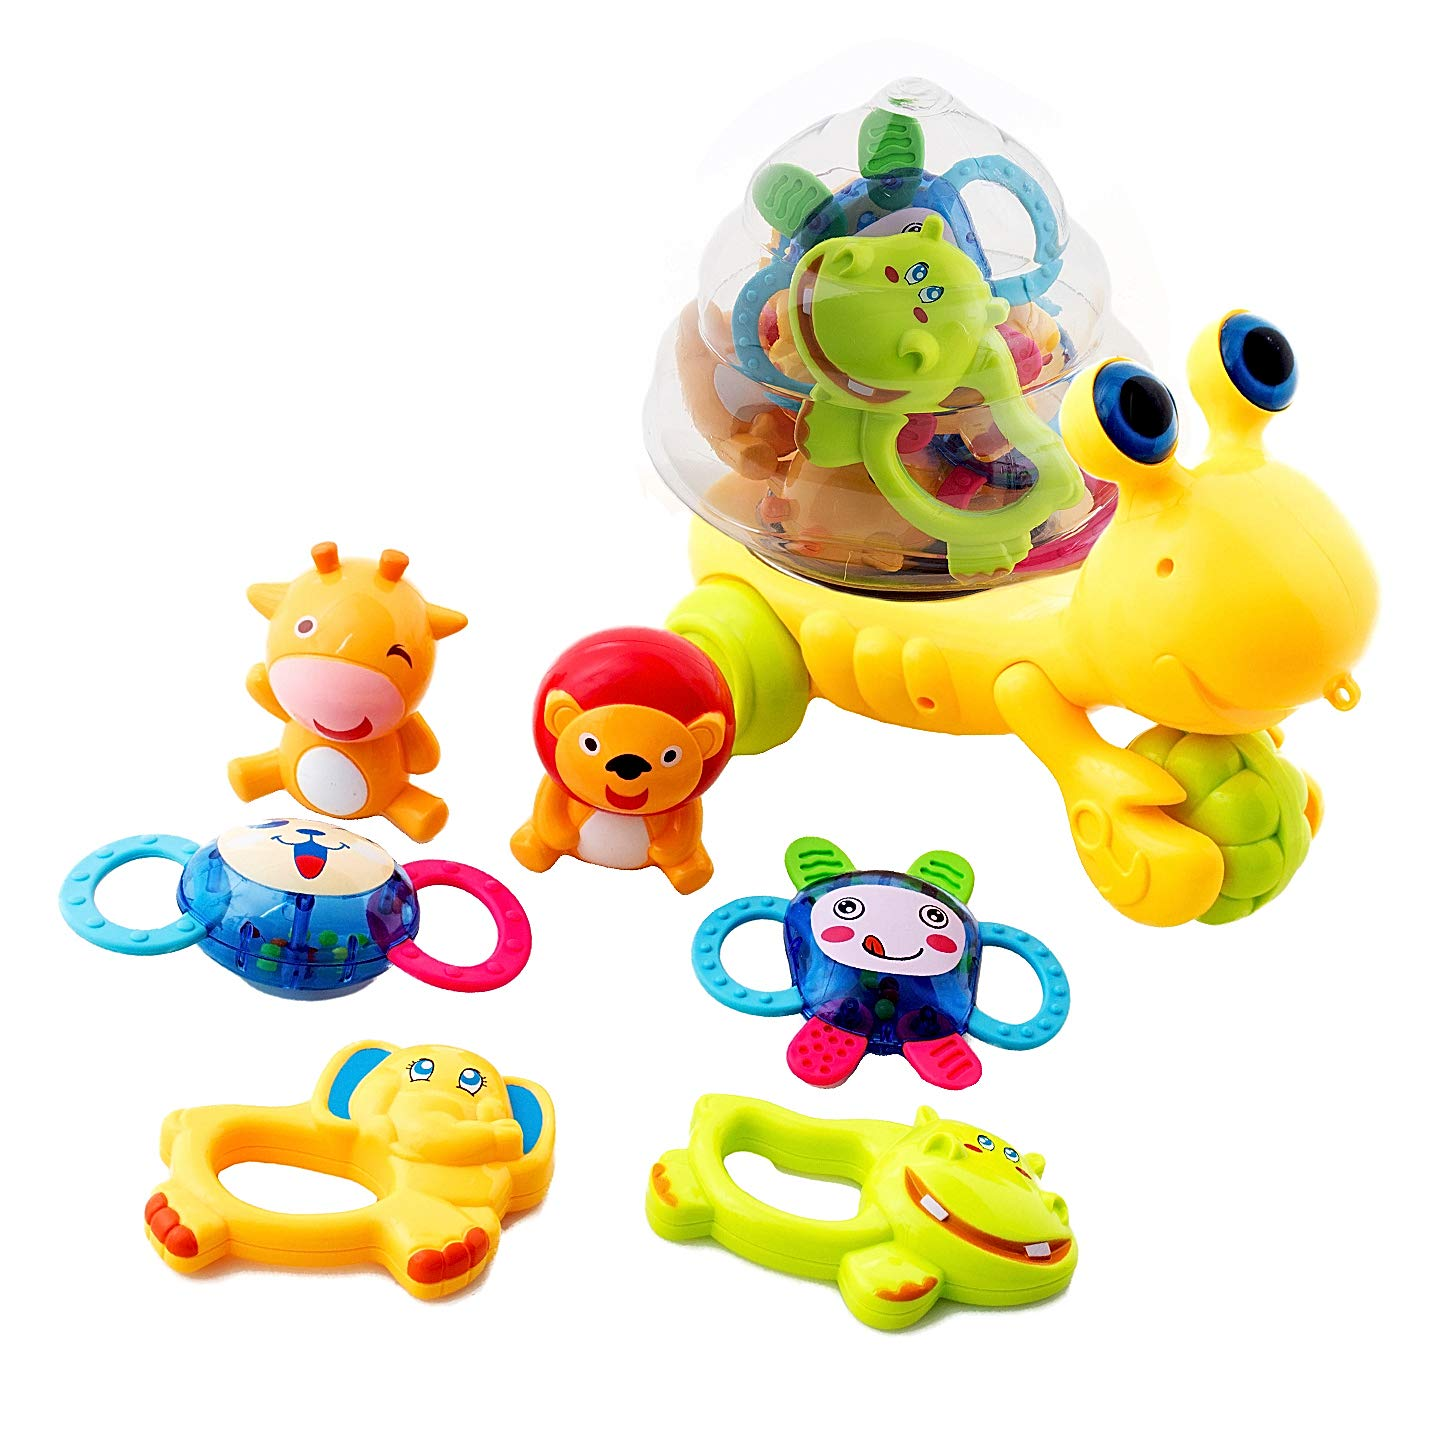 HANMUN Baby Rattles Teether Toys,Infant Shaker,Grab and Spin Rattle Set with Snail Storage Box Toys for 0,3,6,9,12 Month Old Baby Infant Newborn Boy